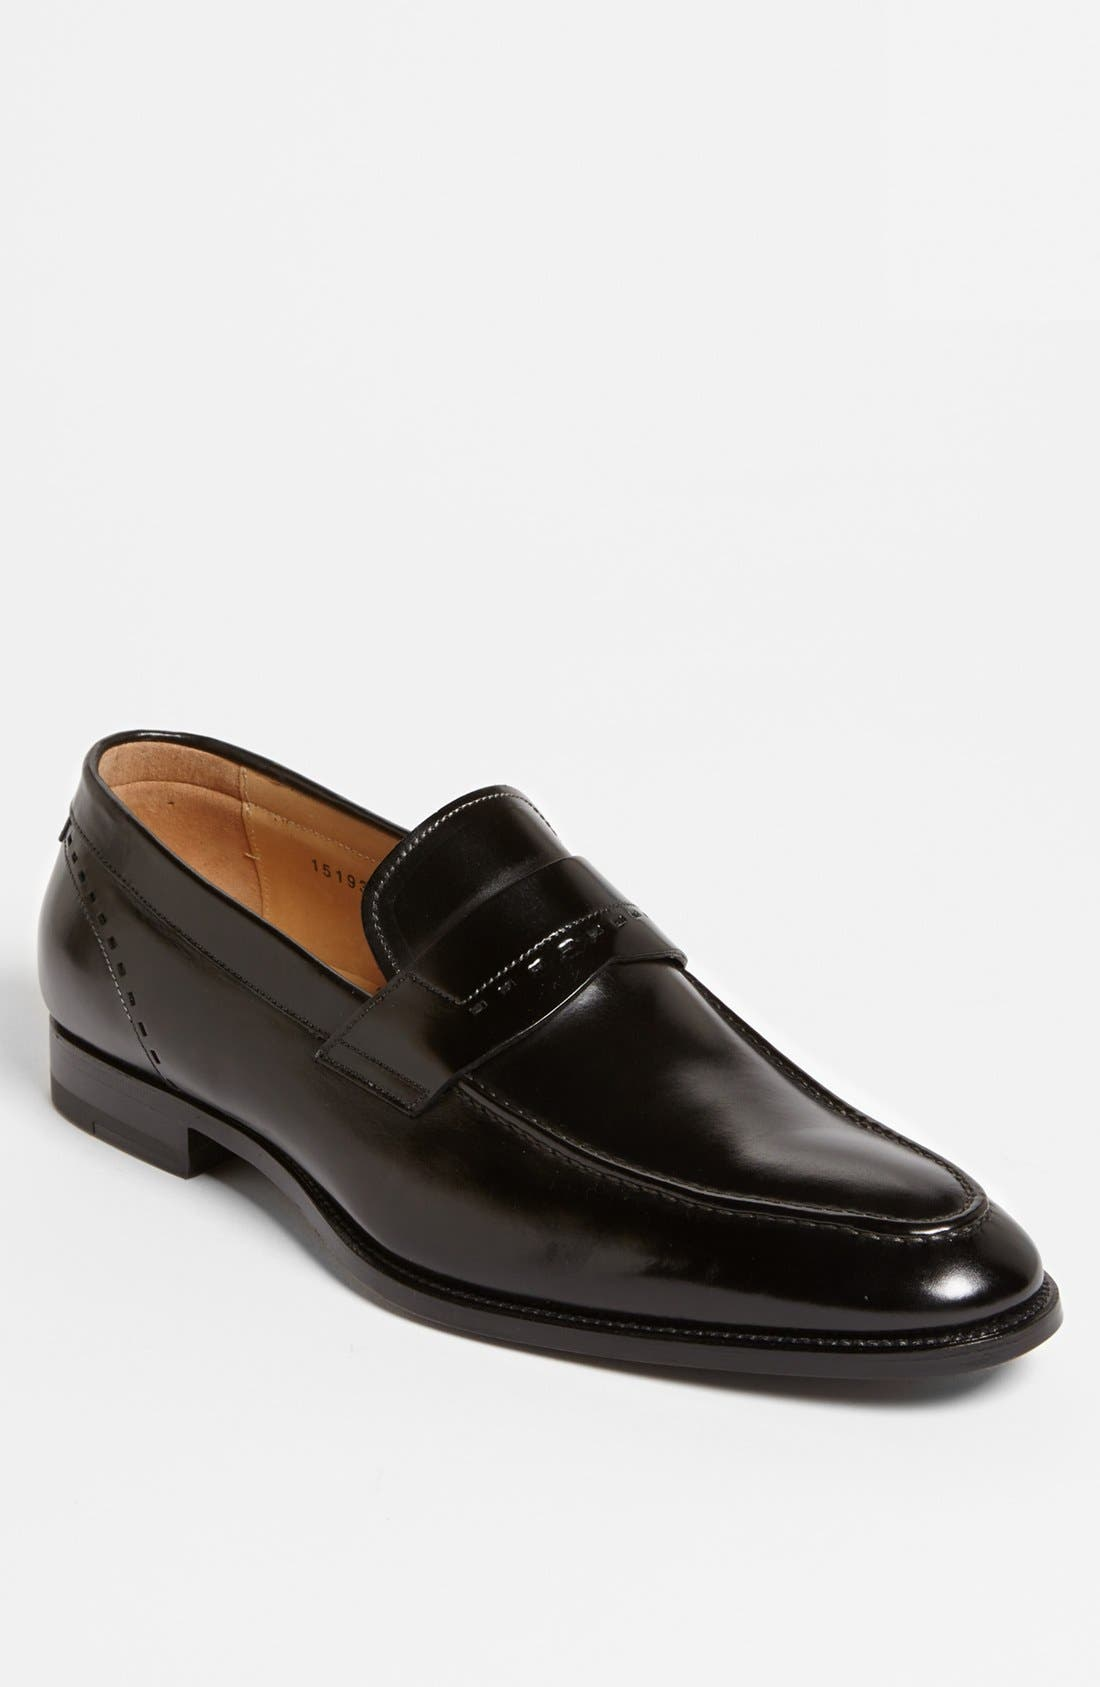 Main Image - Santoni 'Piermont' Loafer